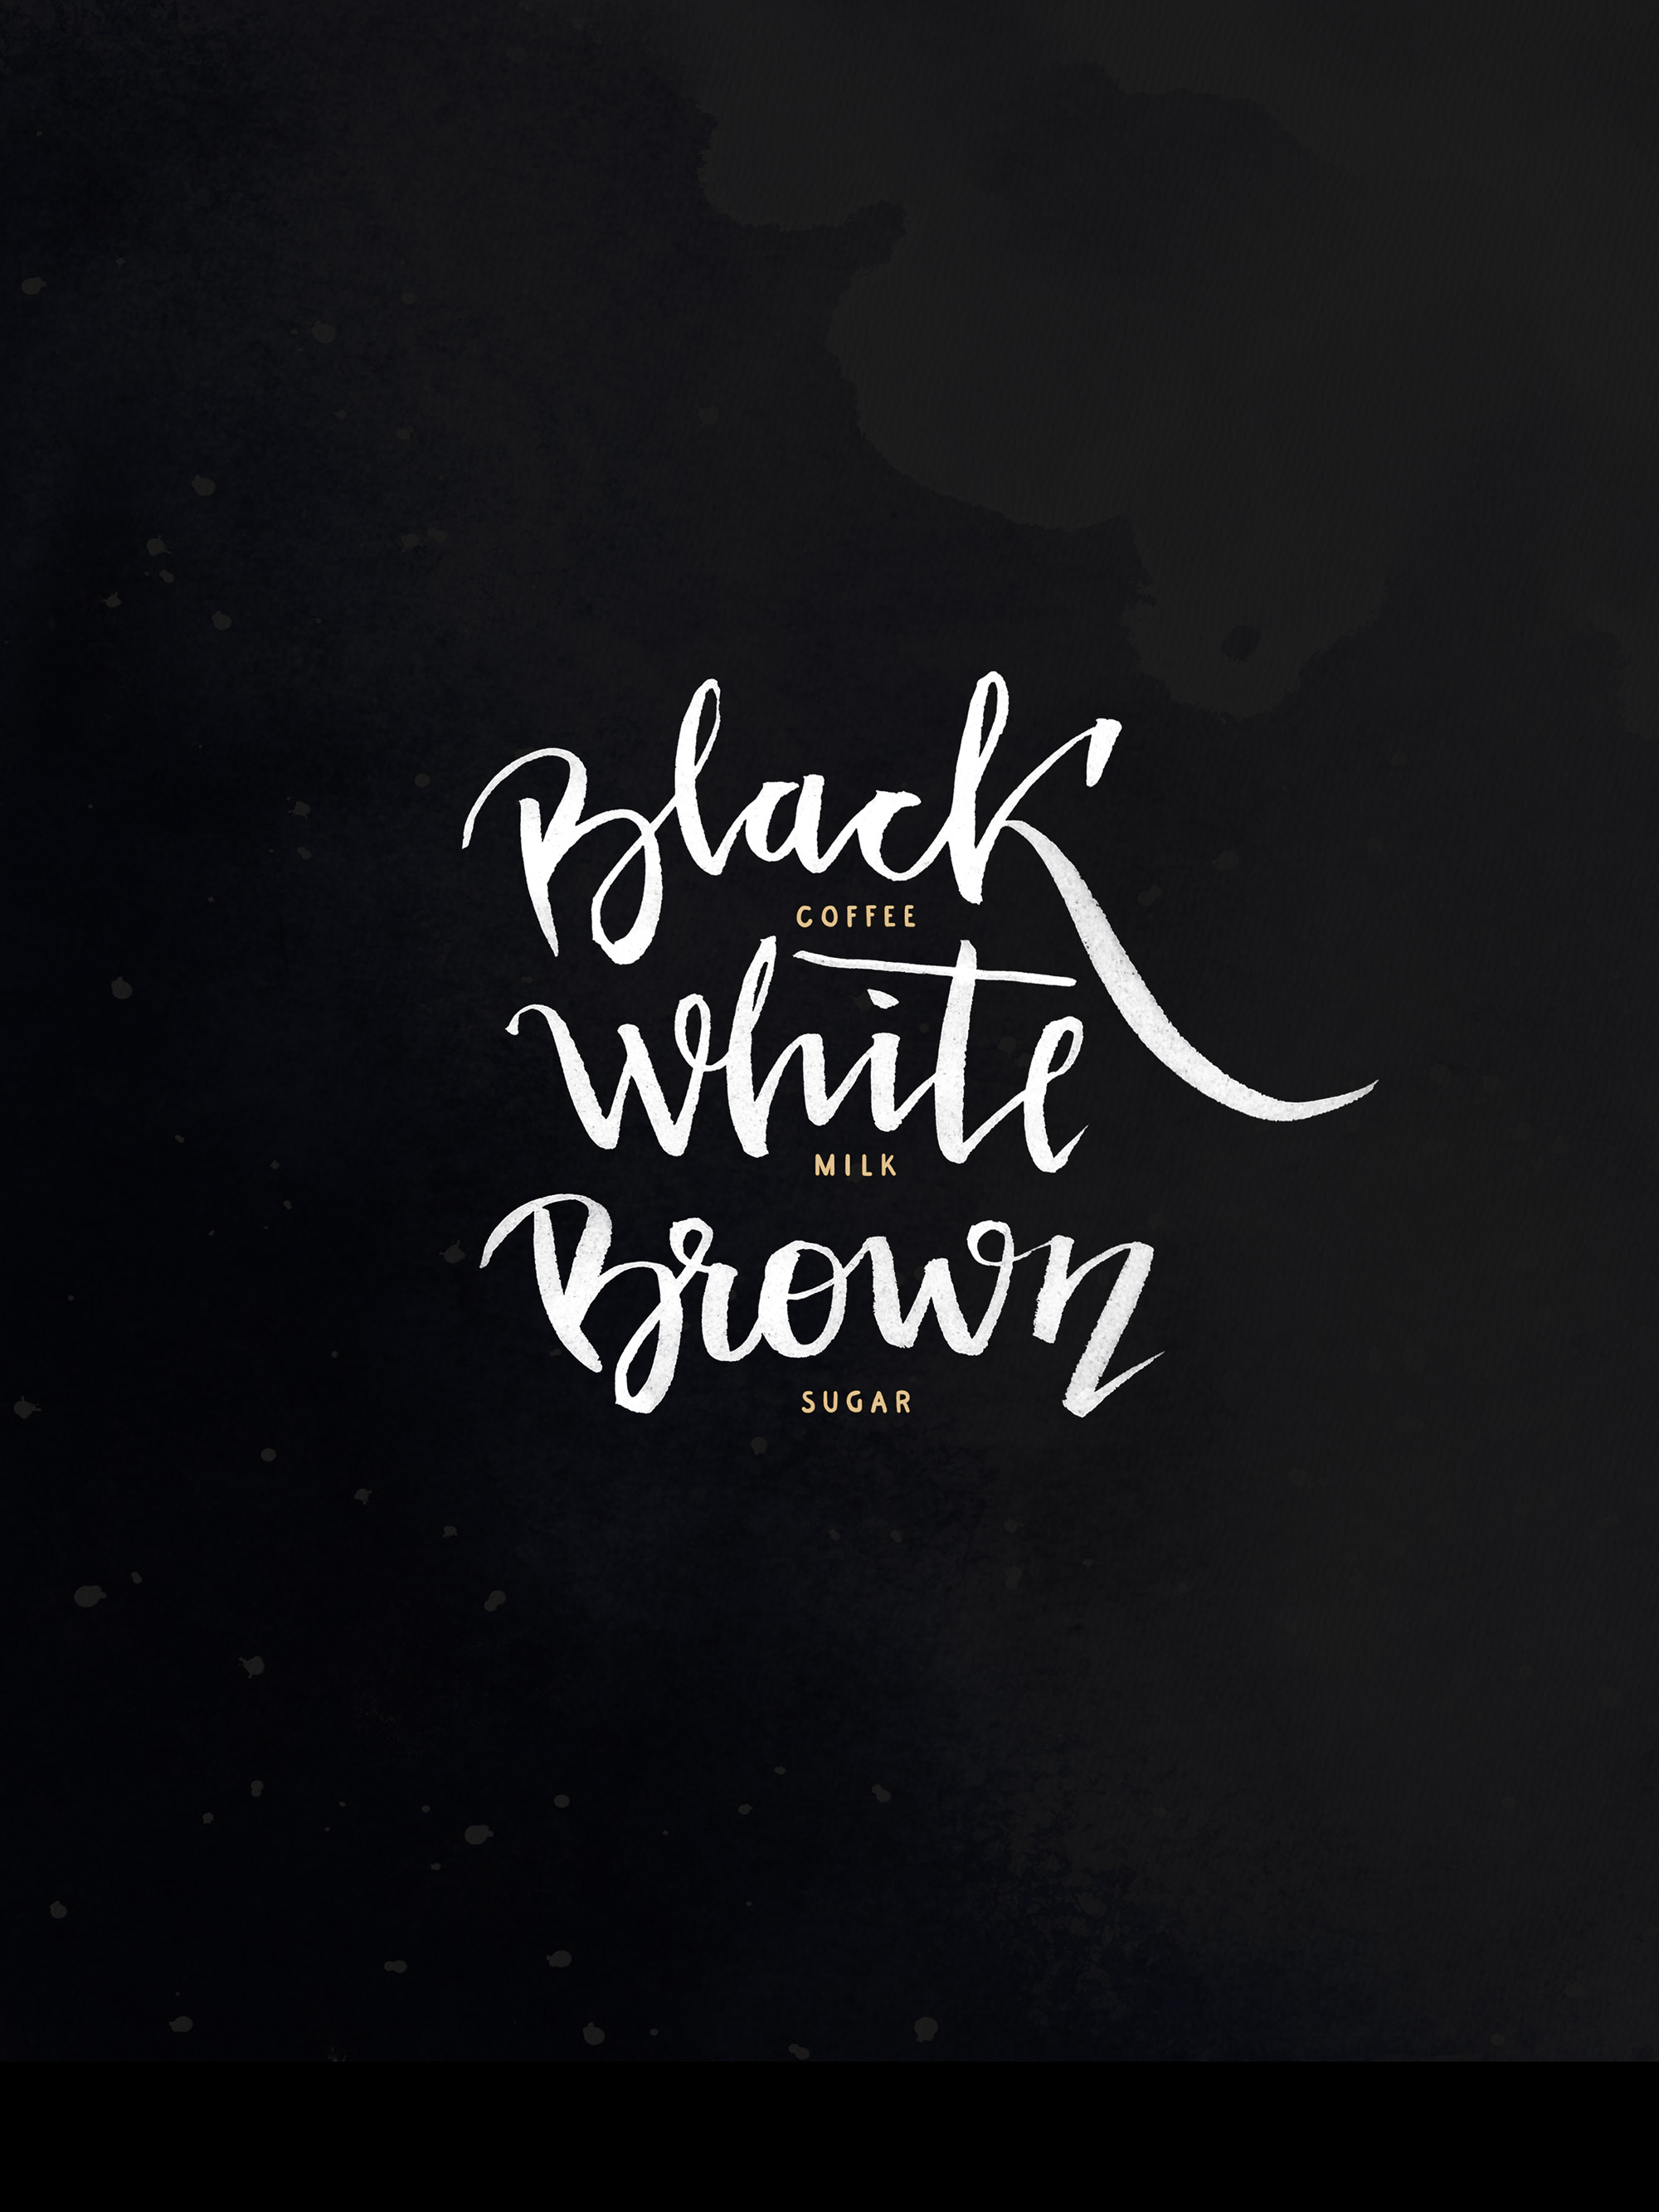 black-white-brown flandepan lettering